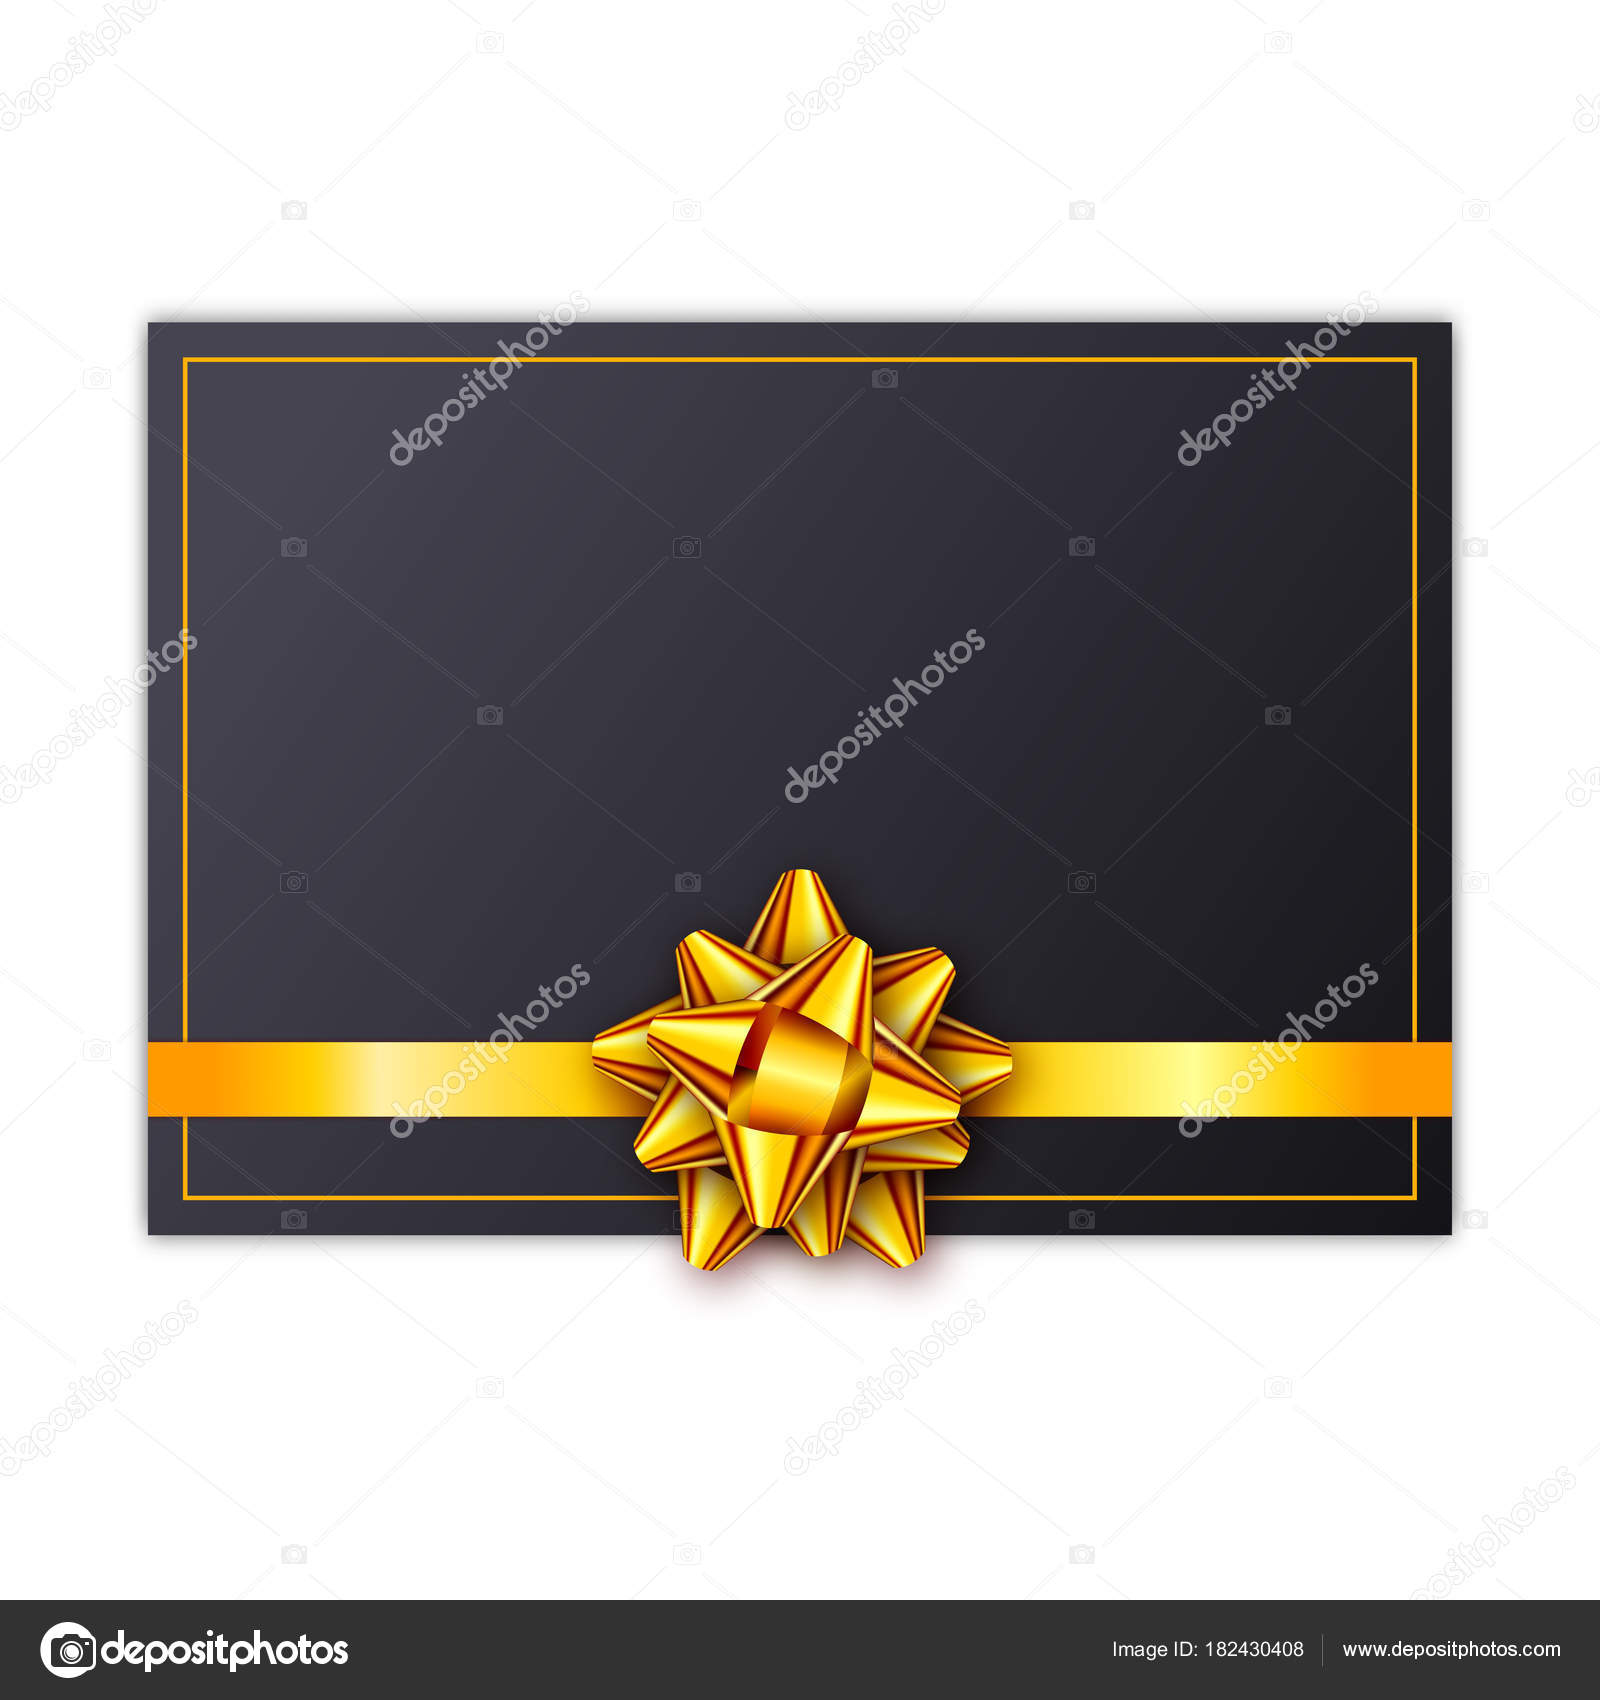 Black Holiday Gift Card With Golden Ribbon And Bow Template For A Business